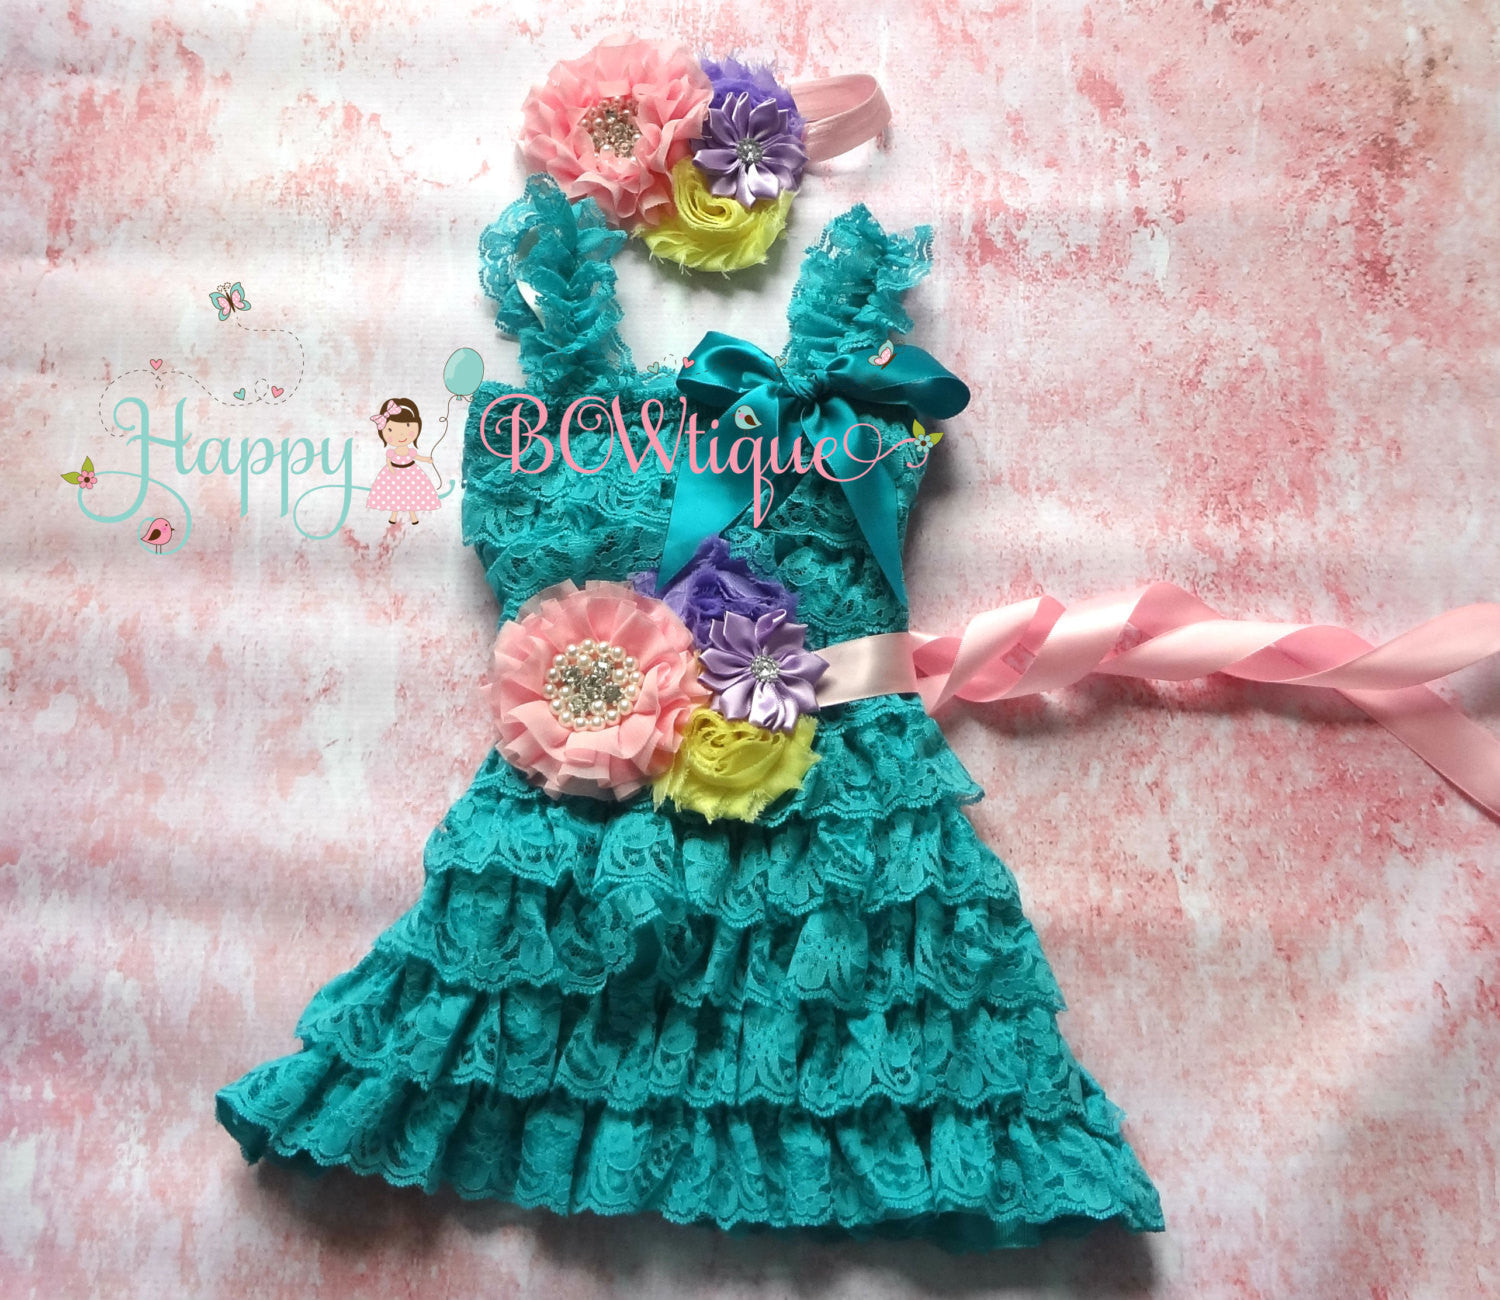 Girl's Blue Lace Dress/ Girl's Pretty Jade Petti Lace dress - Happy BOWtique - children's clothing, Baby Girl clothing